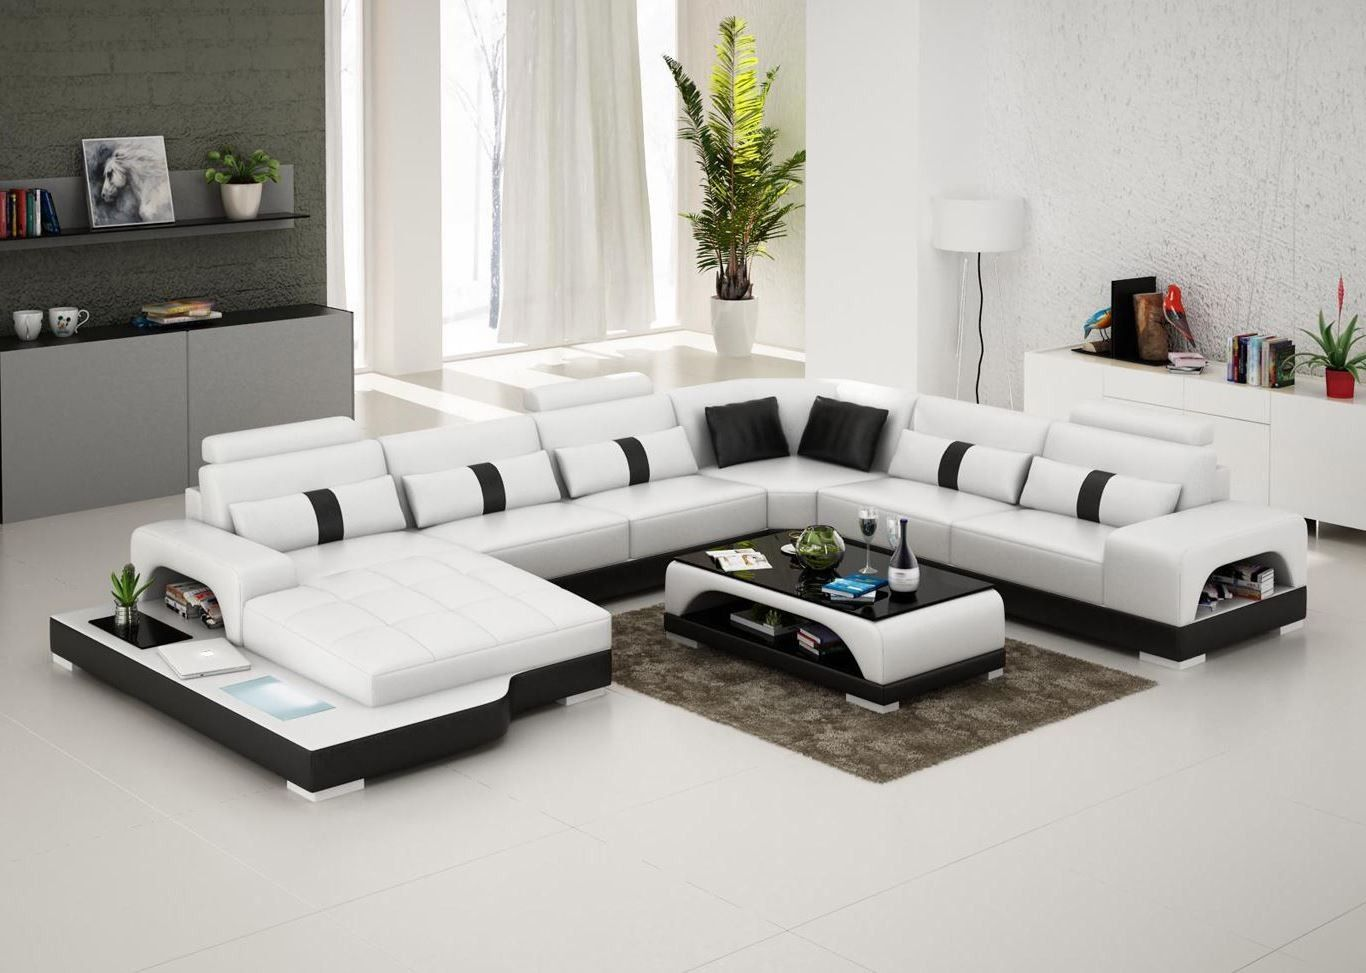 Lovely Connie Sectional Sofa   Leather Living Room Furniture   Fancy Furniture    Leather Sectional Sofa   From Opulent Items